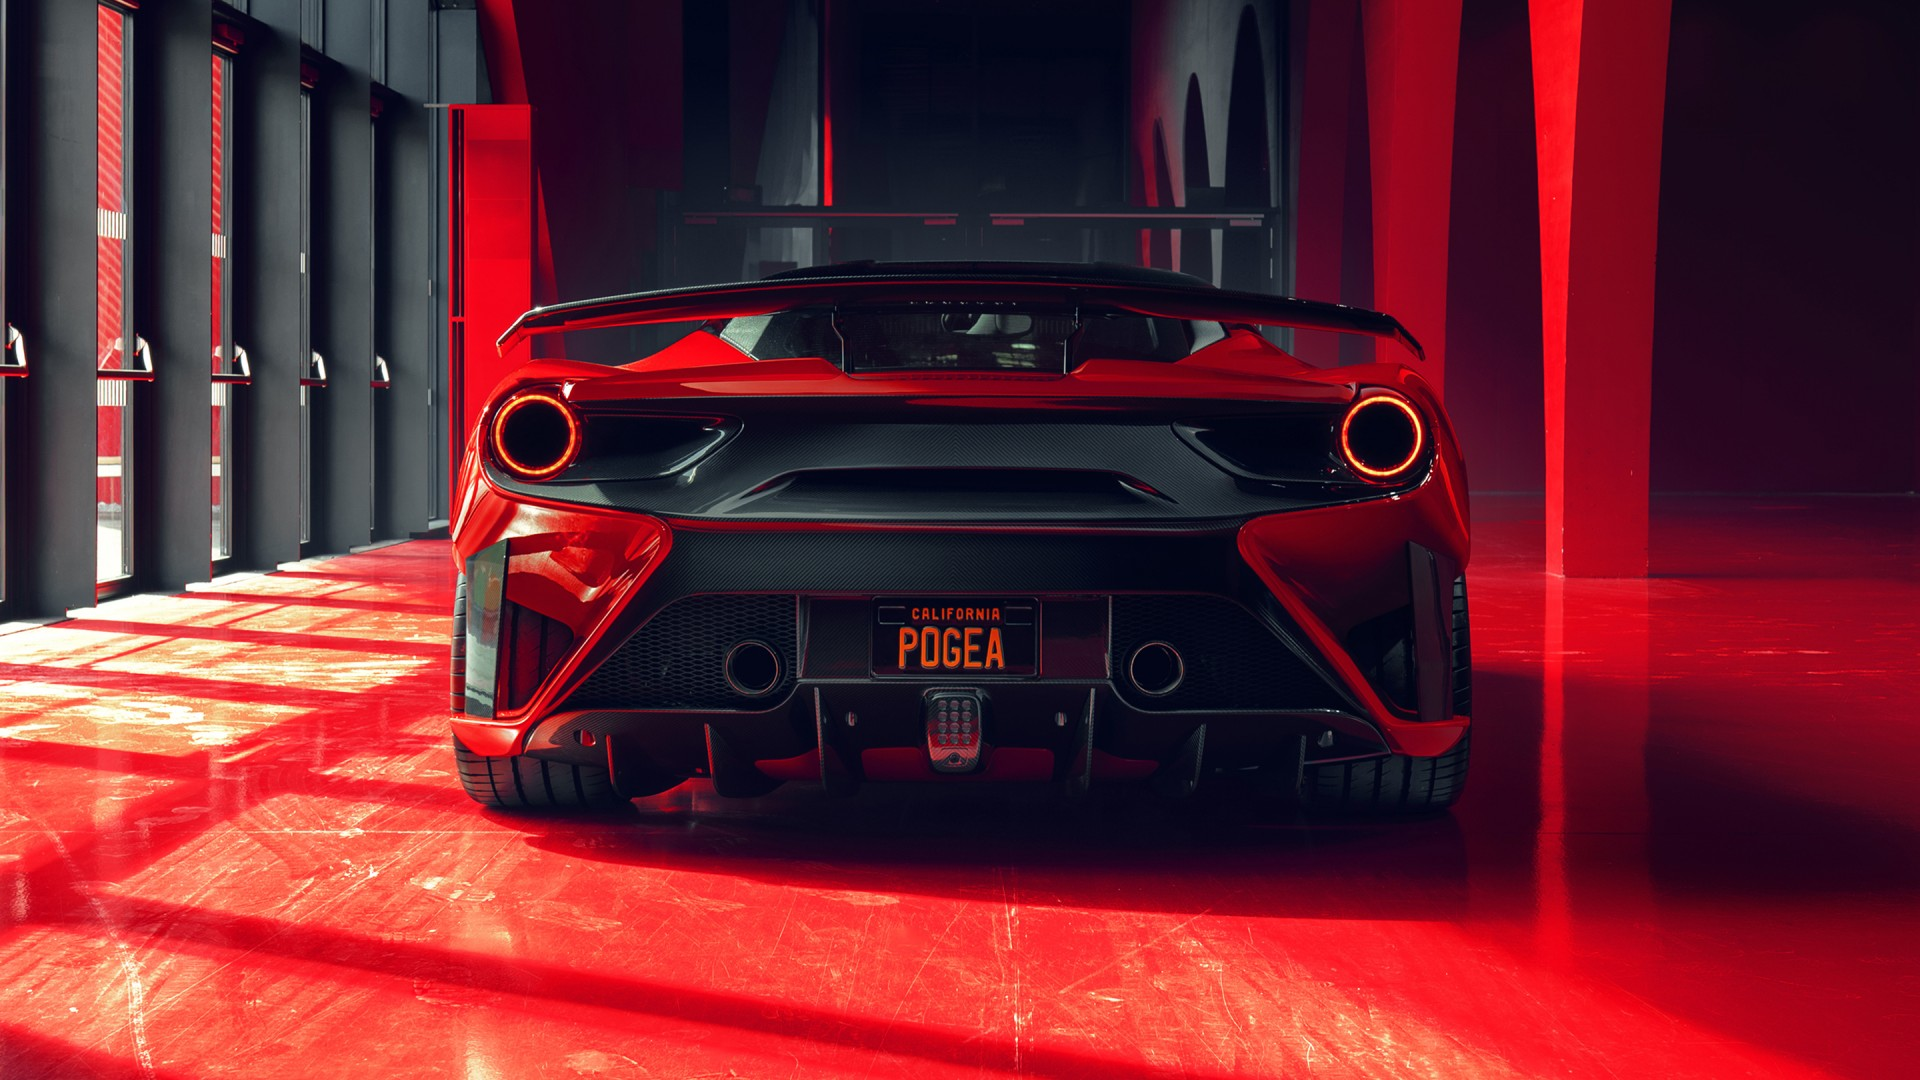 2018 Pogea Racing FPlus Corsa Ferrari 488 GTB 2 Wallpaper ...